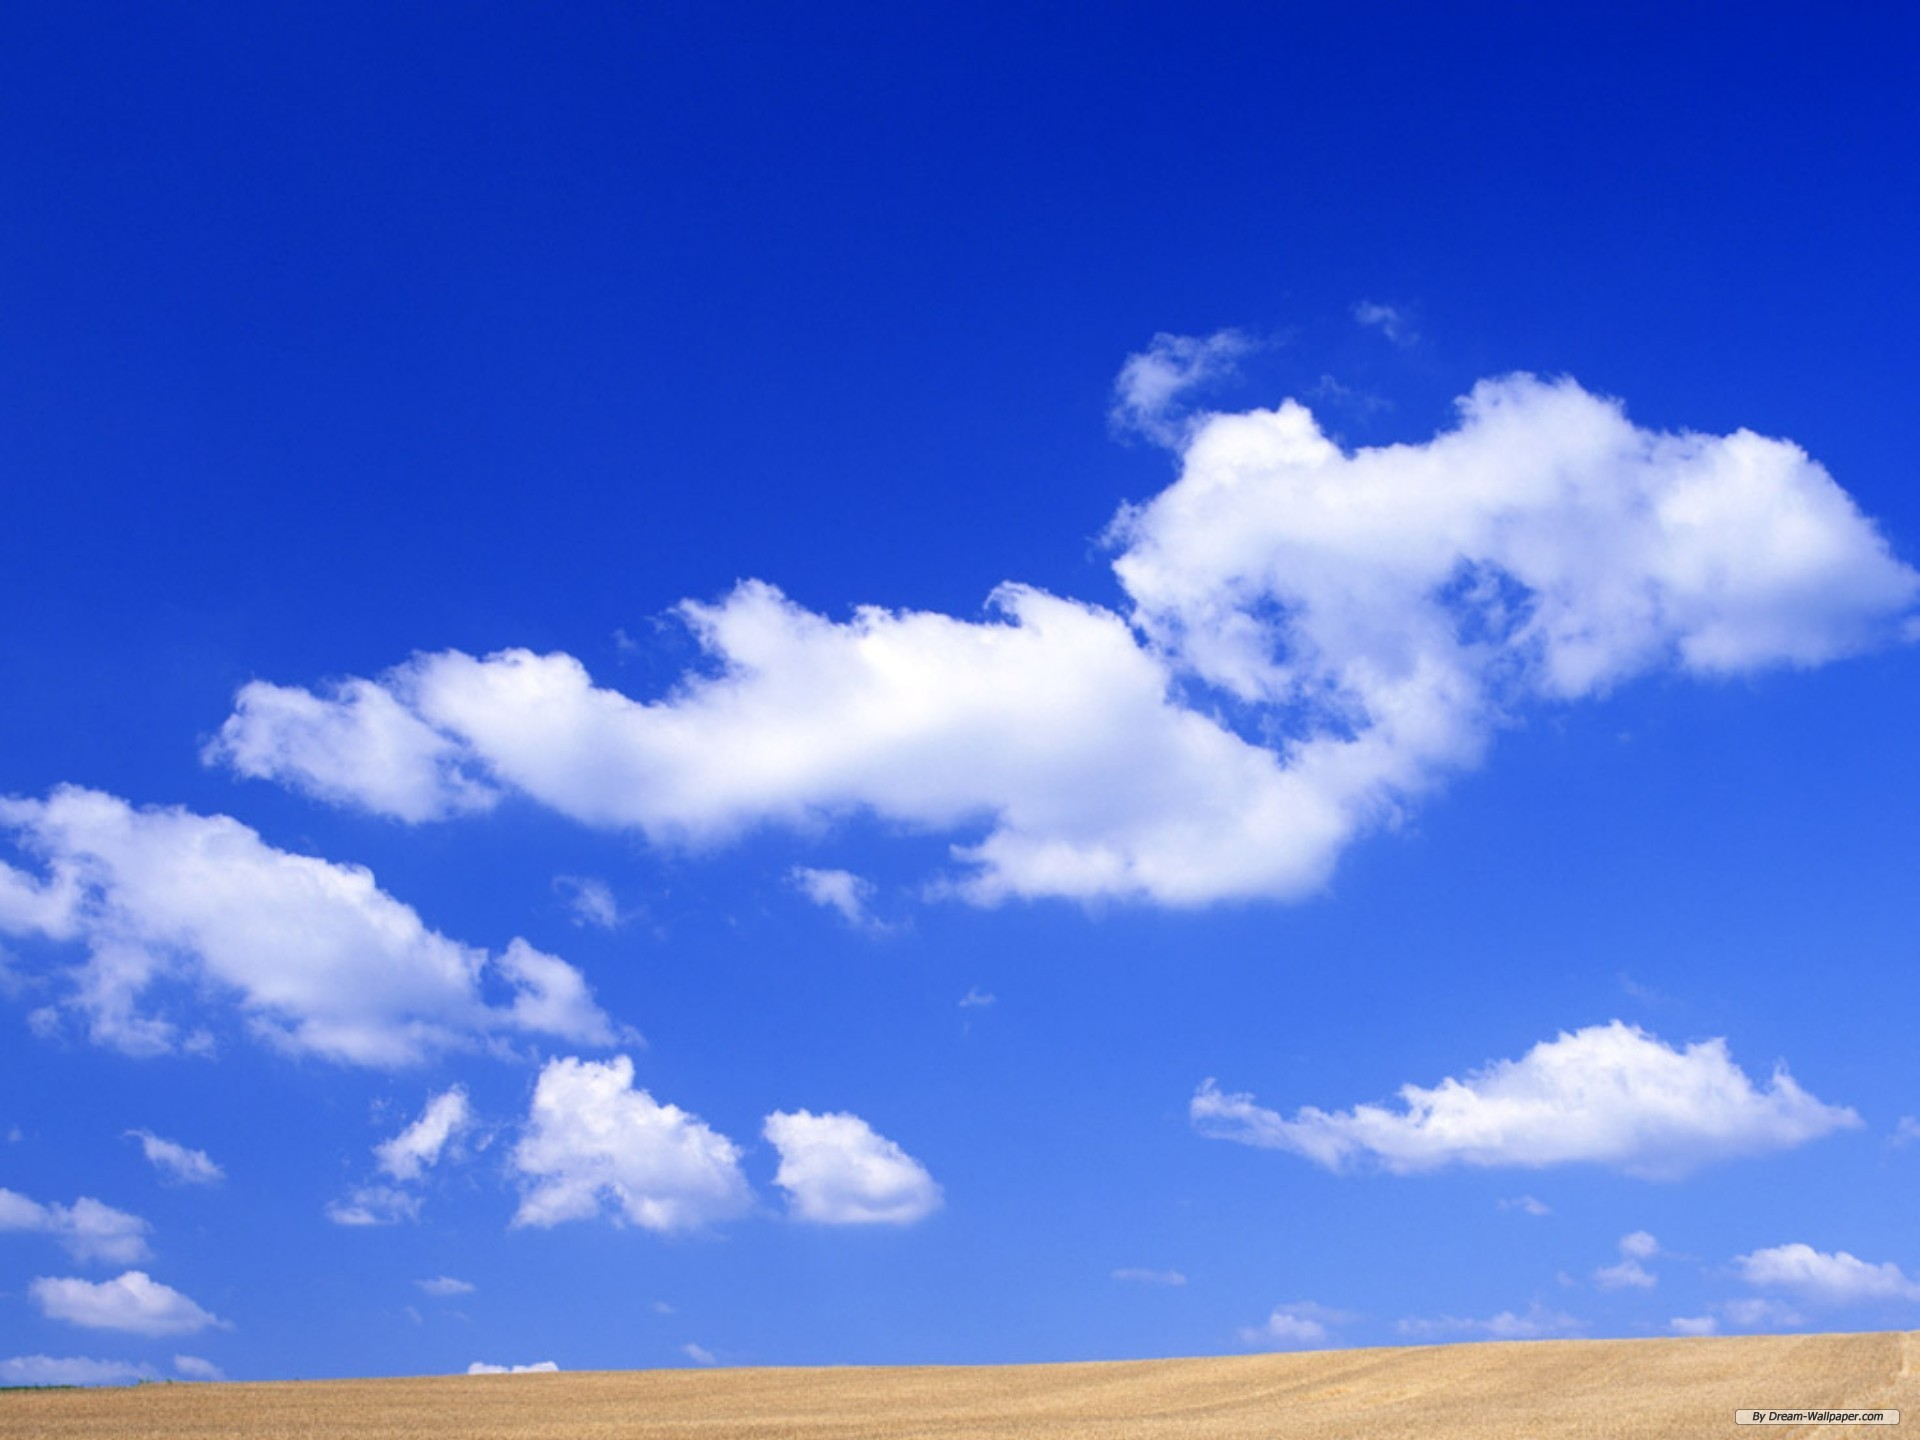 1920x1440 wallpaper - Blue Sky And White Cloud 2 wallpaper -  wallpaper .